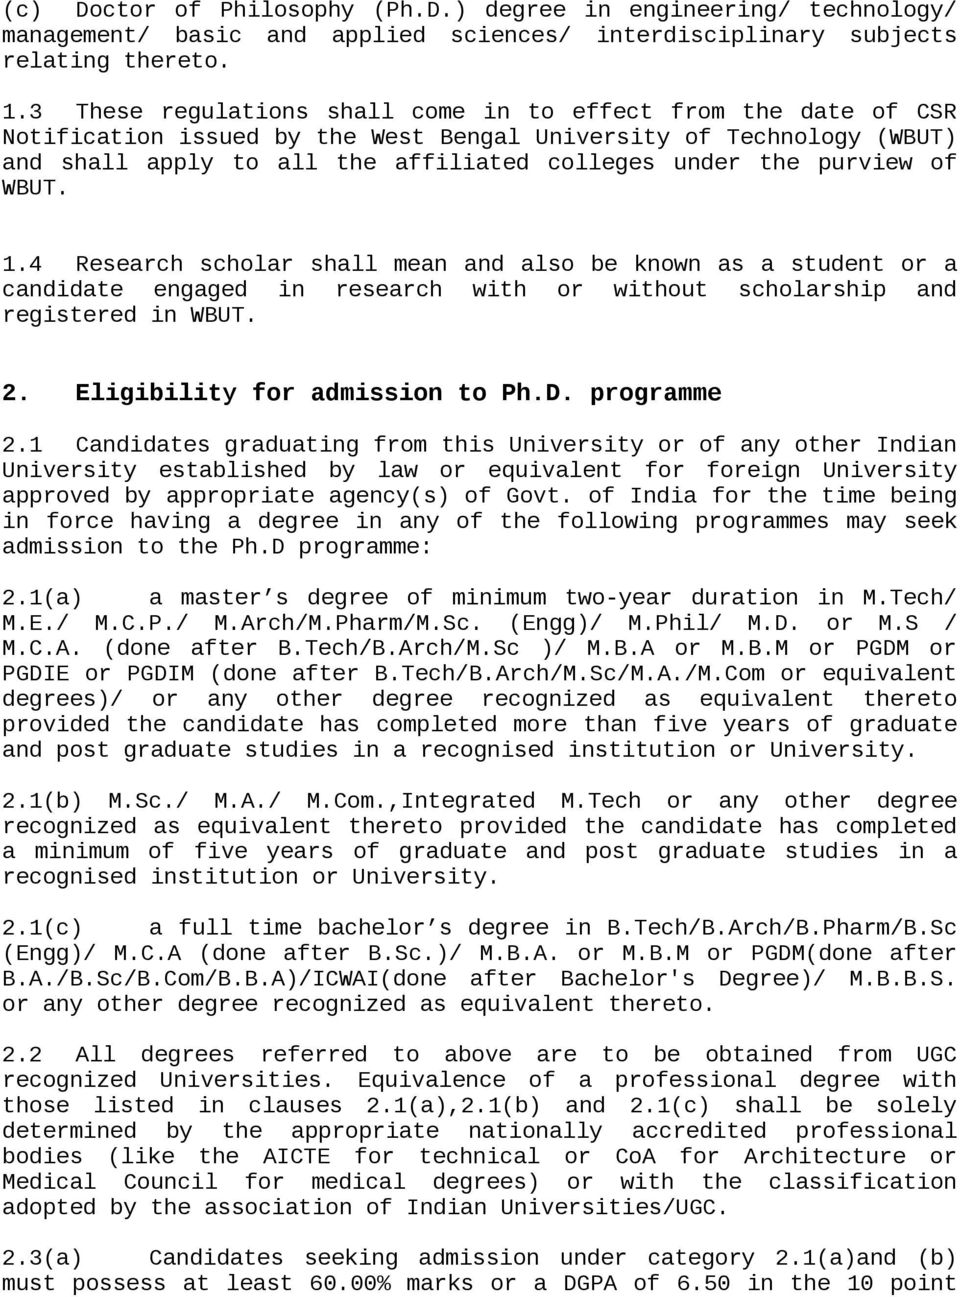 Draft Regulations Governing Doctoral Degrees Of Wbut For